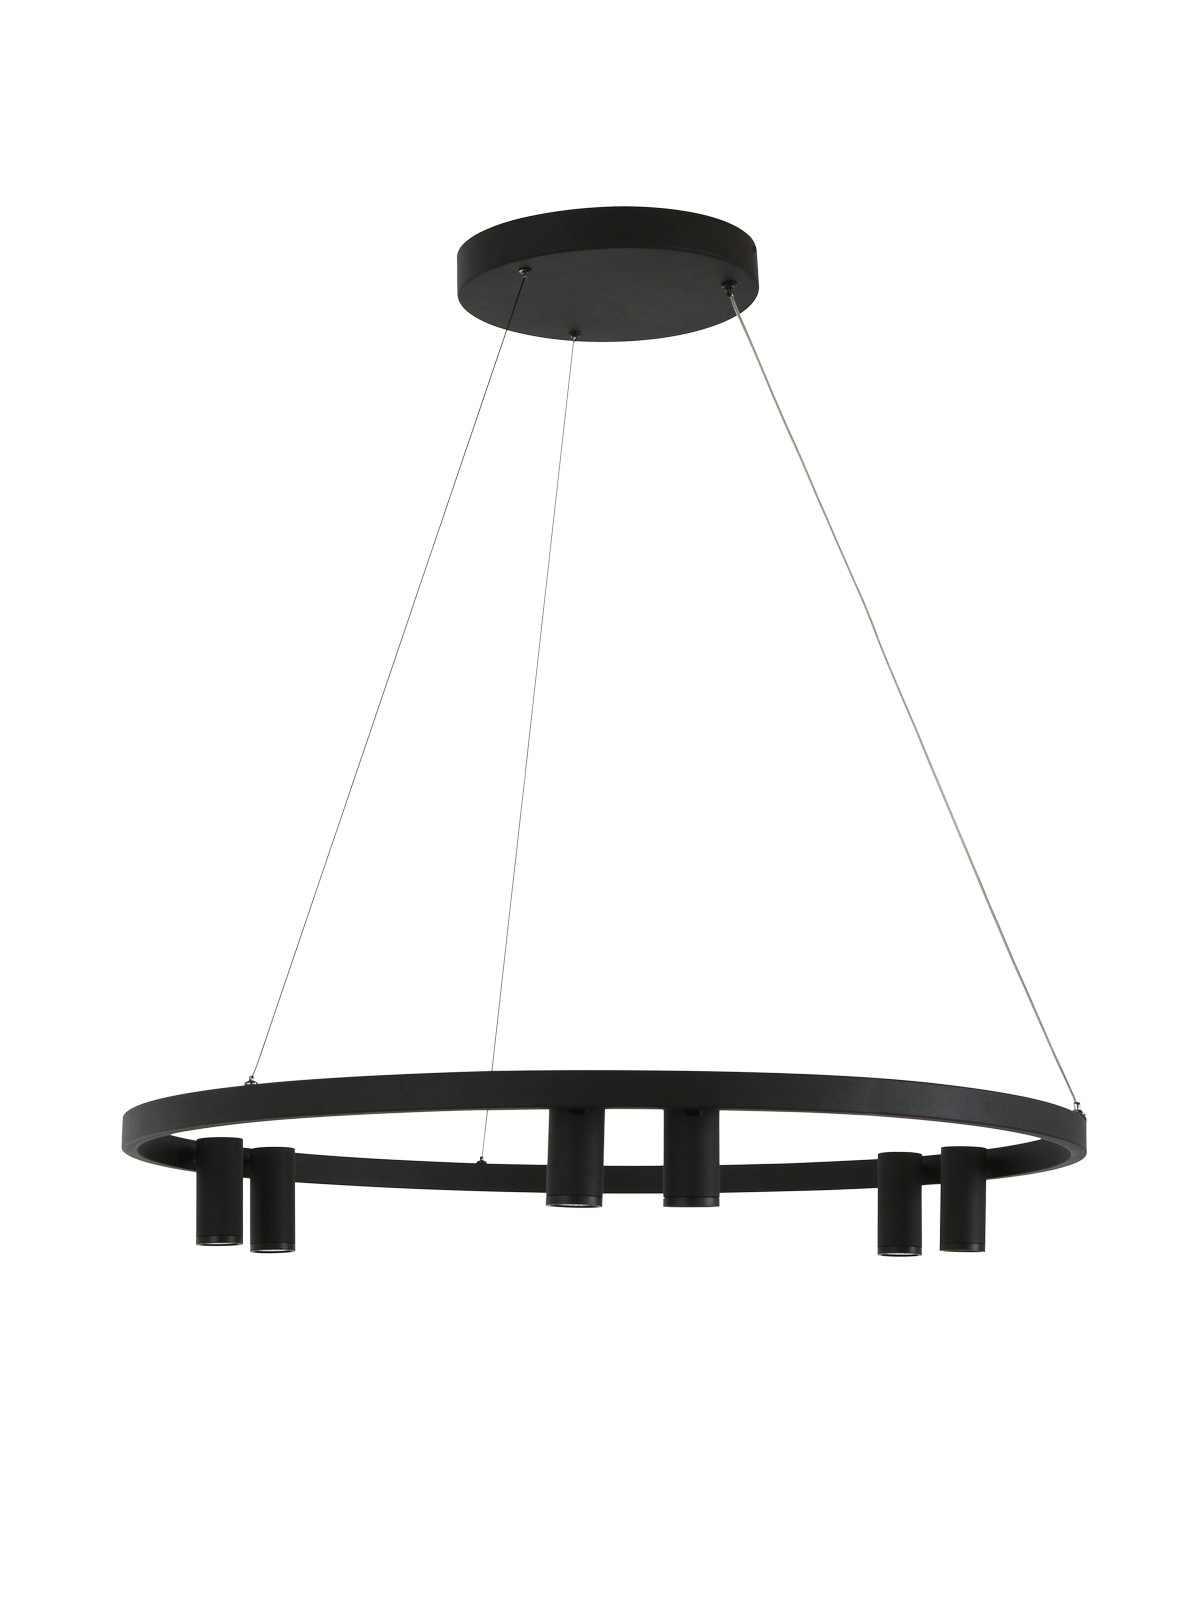 LEDlux Panorama 6 Light Round LED Pendant in Black by Beacon Lighting, a Pendant Lighting for sale on Style Sourcebook